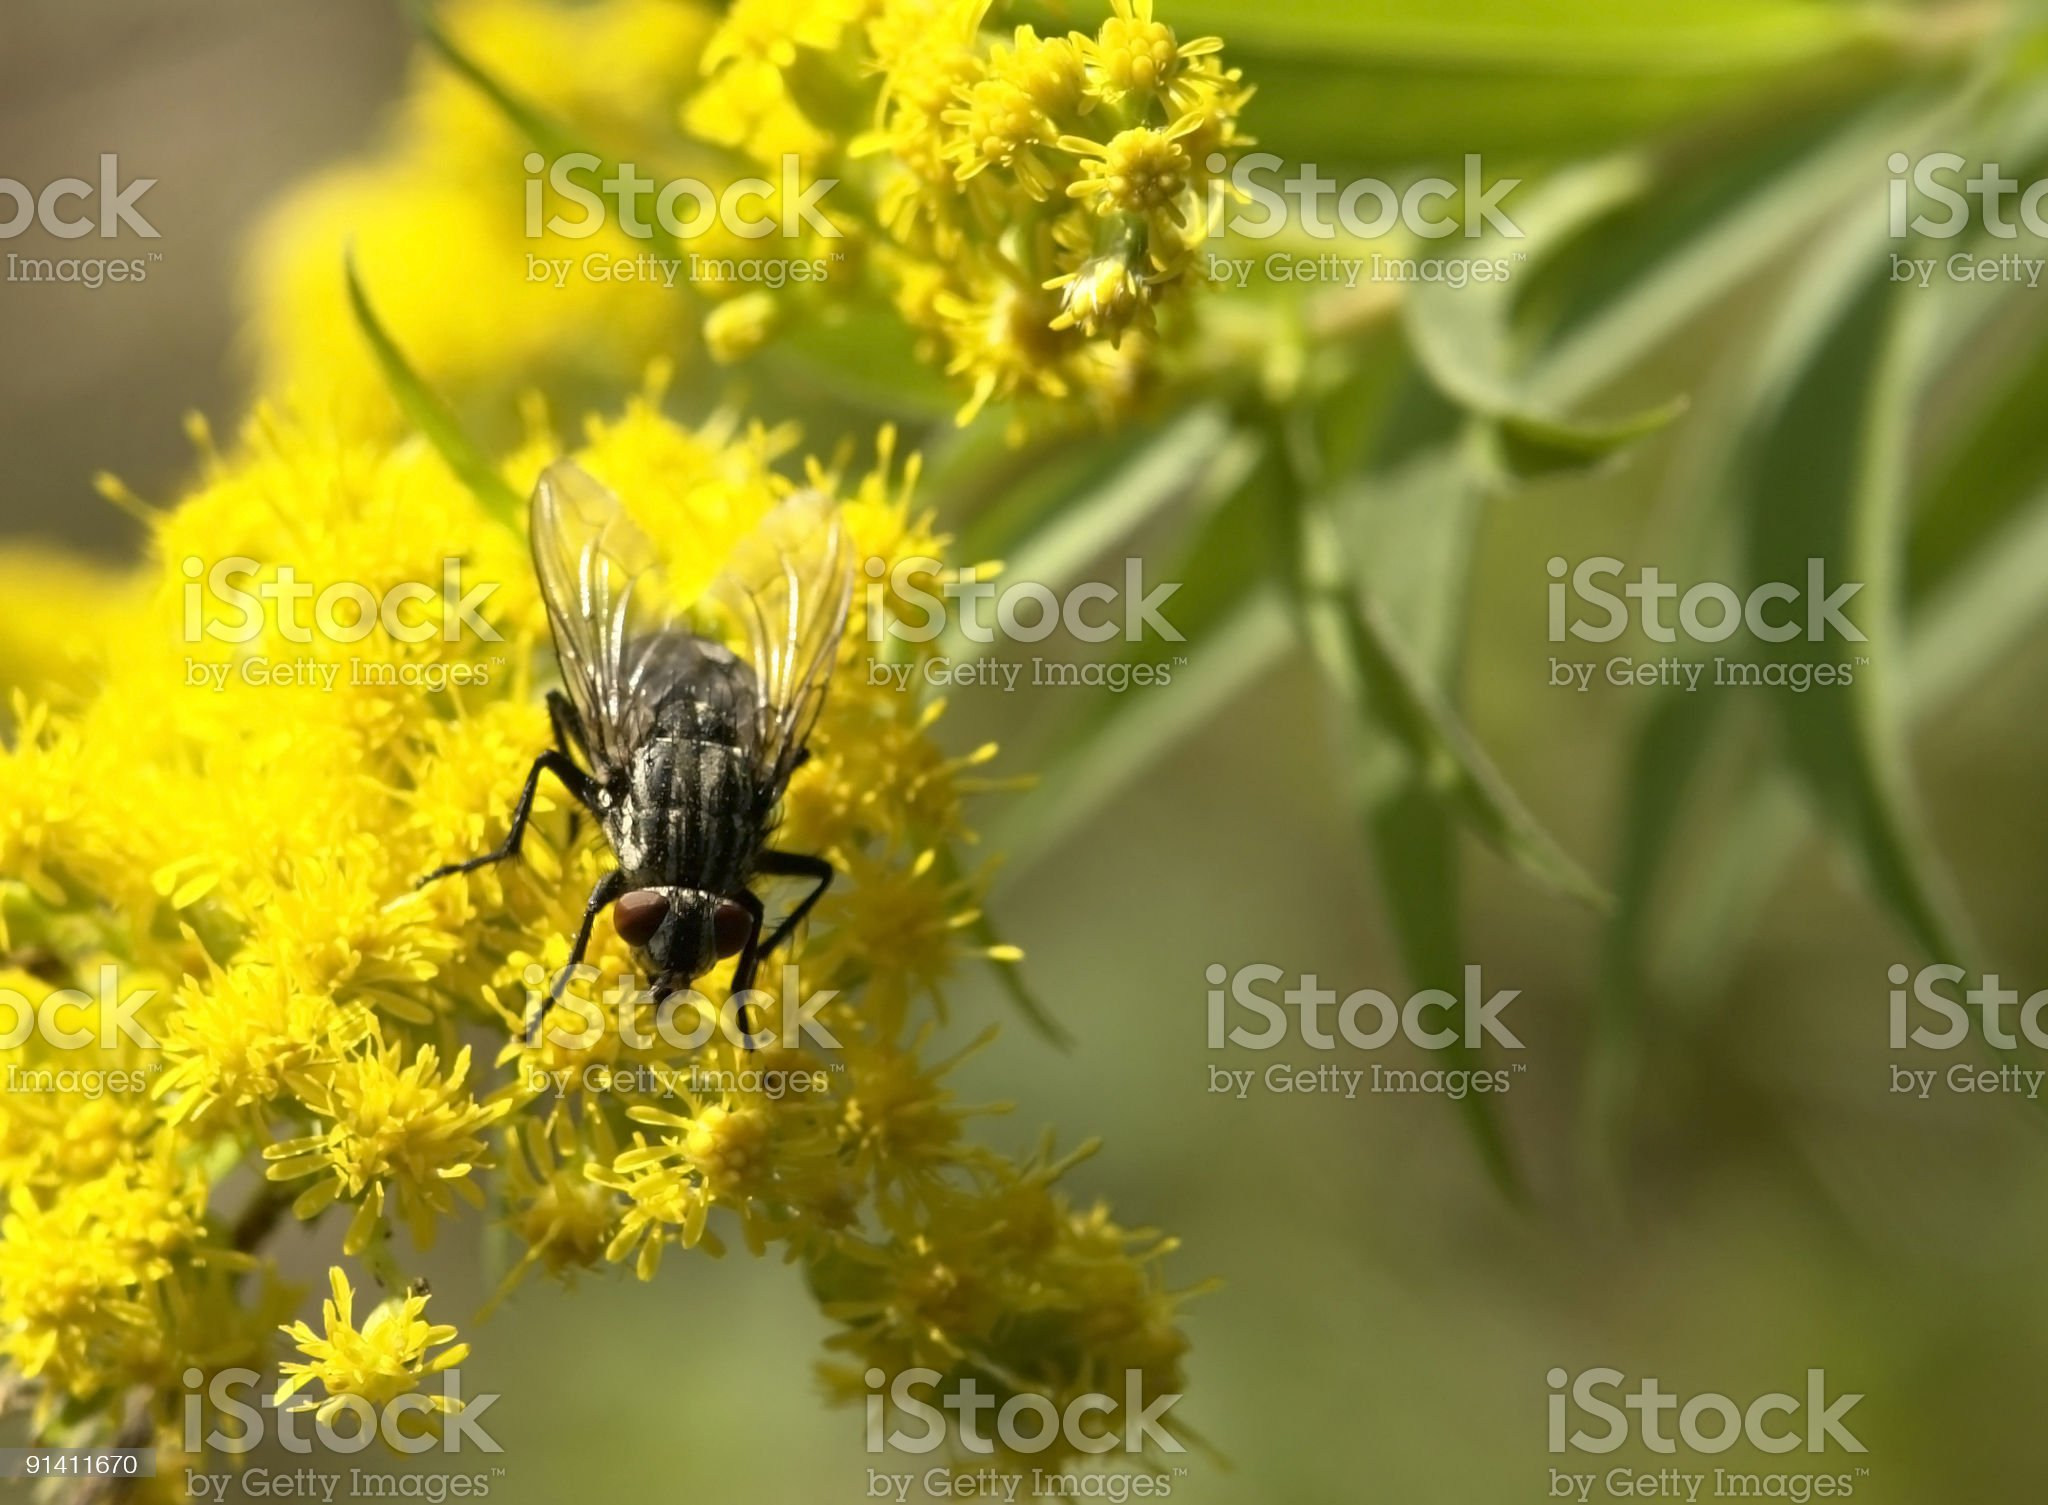 flesh fly on yellow flower royalty-free stock photo